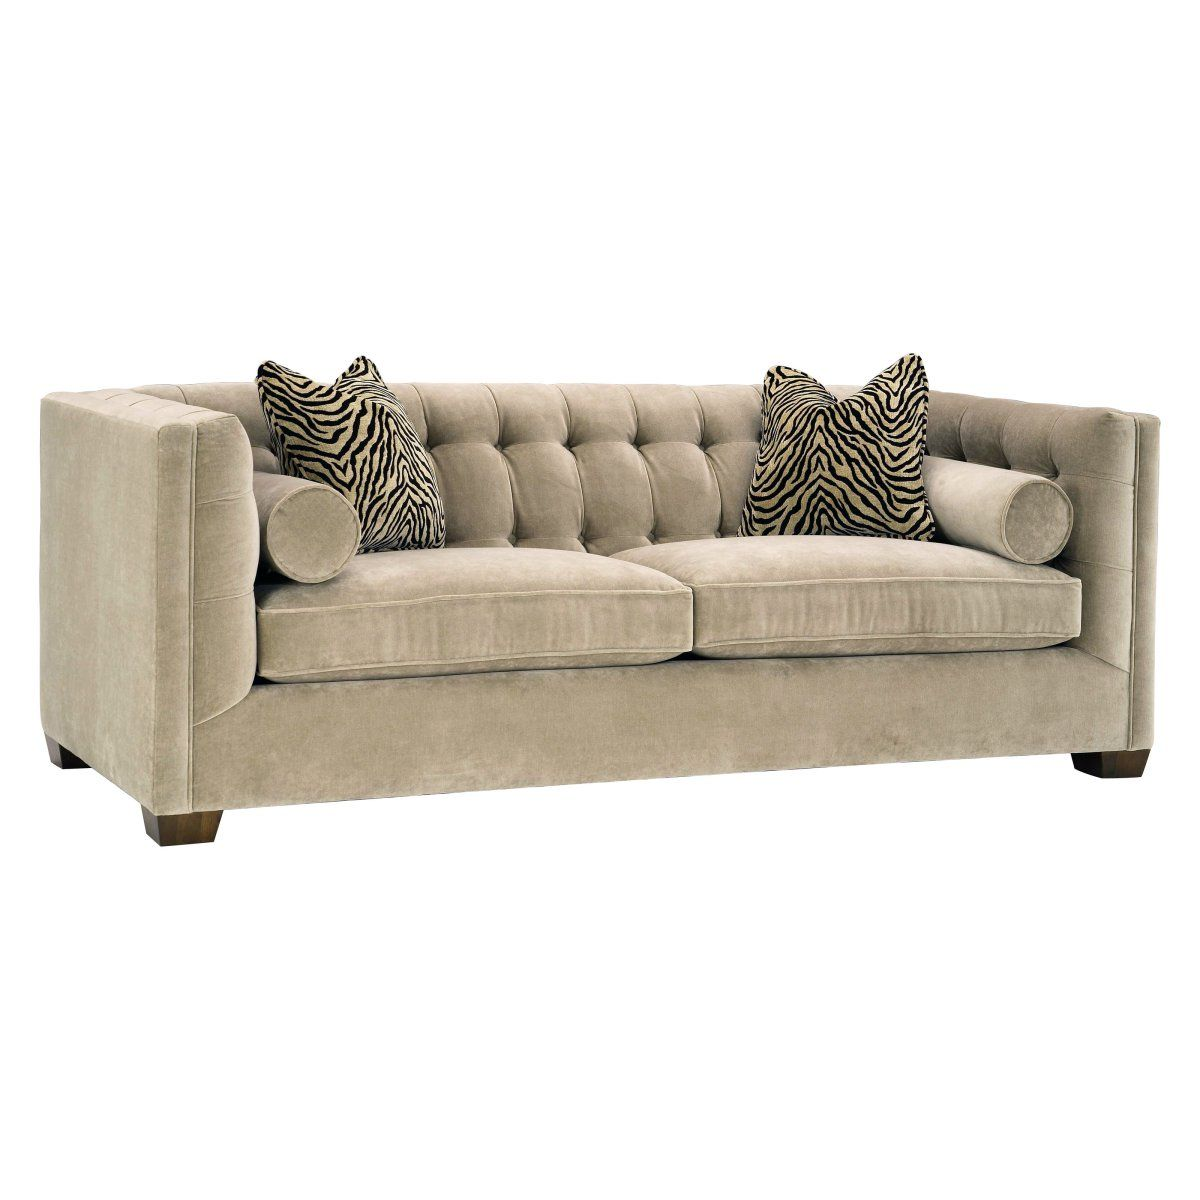 Lazar Tommy Condo Bellisimo Cafe Fabric Sofa With Pillows 2 200 Sofa Styling Sofa Design Decorative Pillows Couch